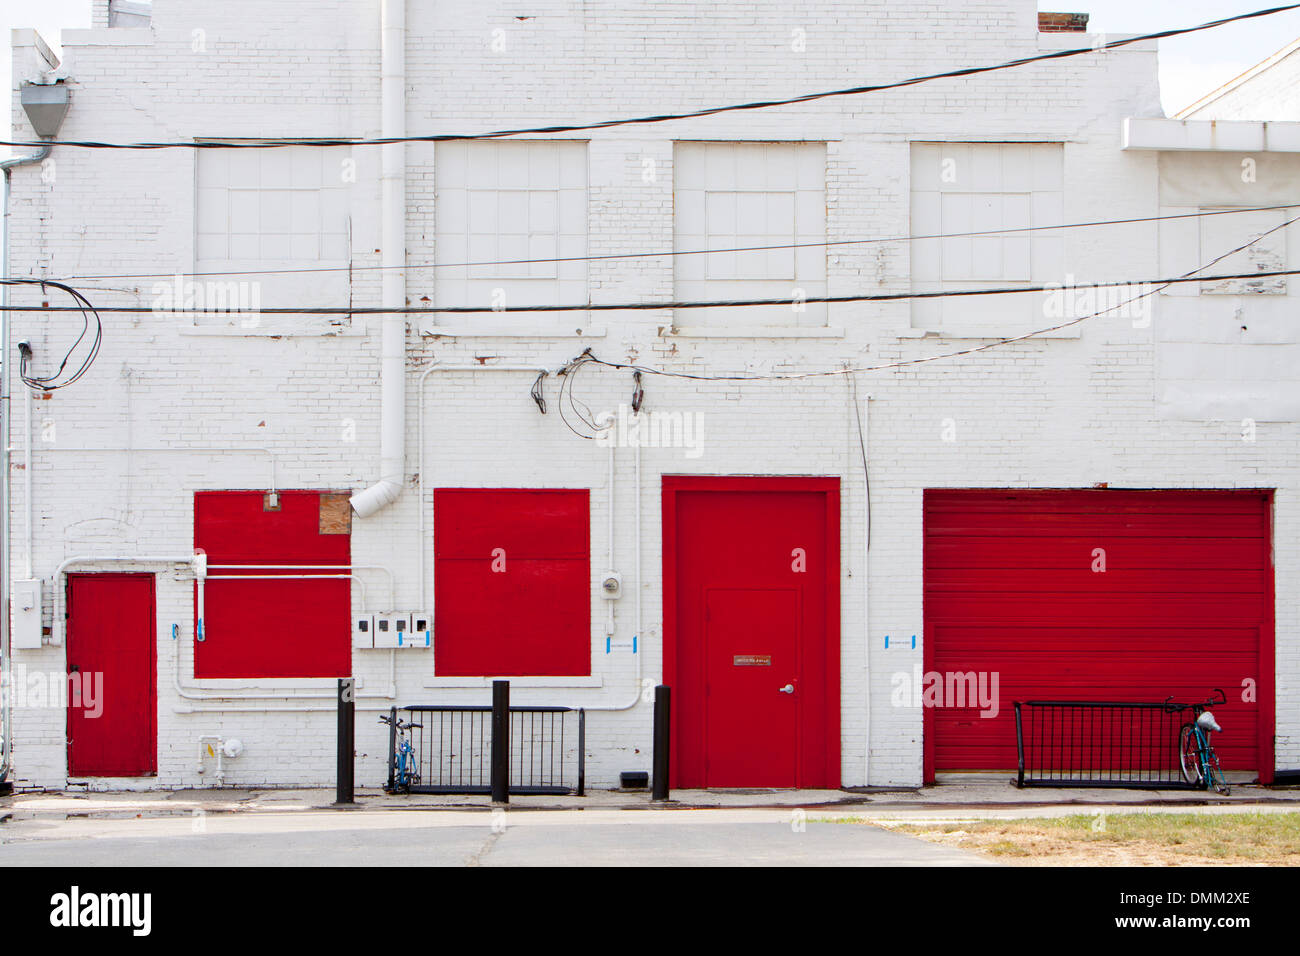 Red doors and windows in the back of a white building in Columbus, Ohio, USA. - Stock Image